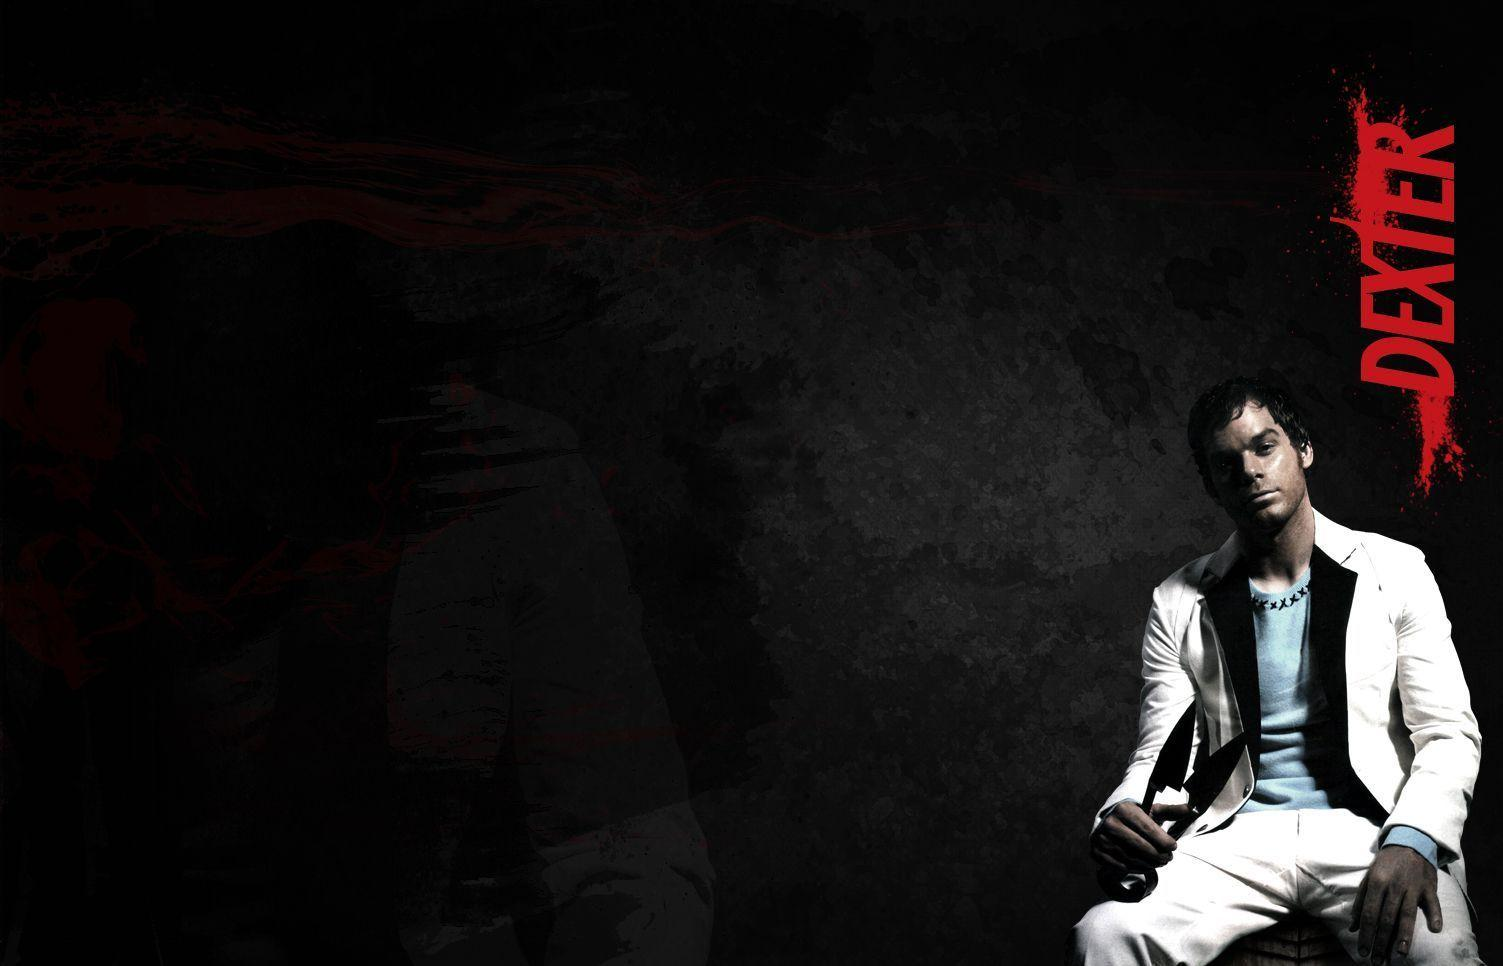 Dexter Computer Wallpapers, Desktop Backgrounds 1503x966 Id: 52826